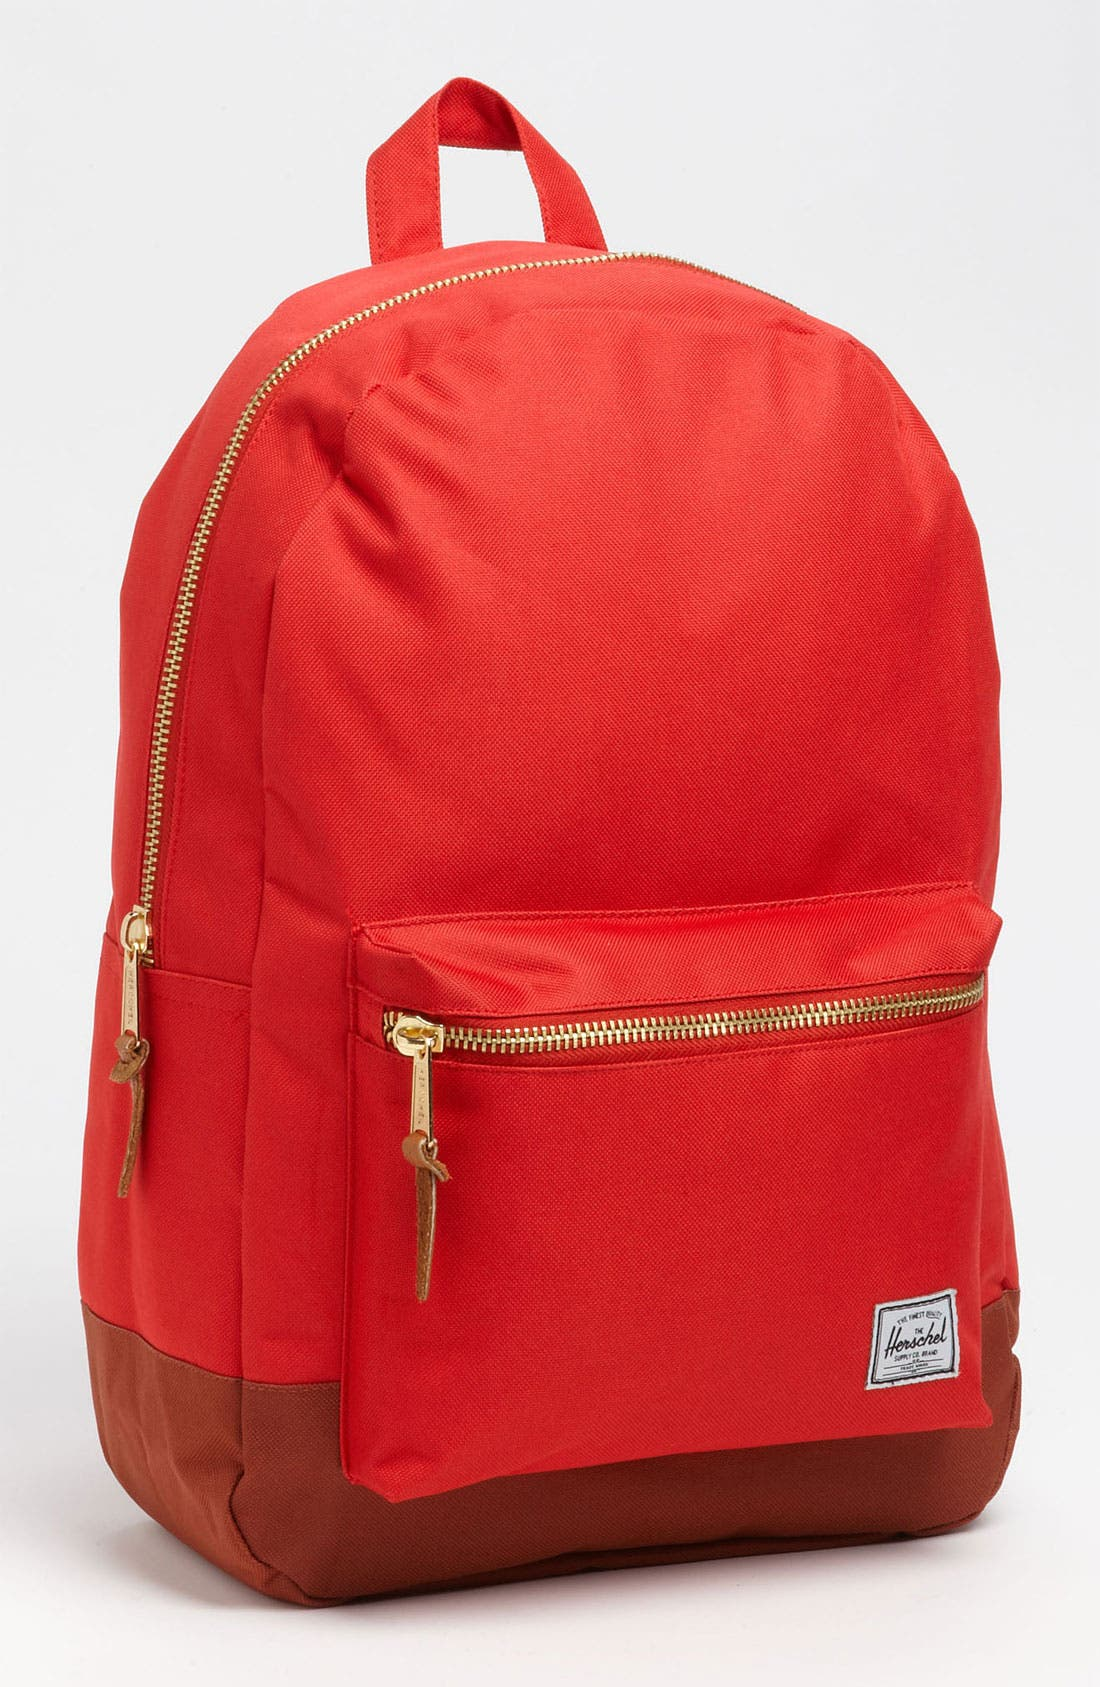 Alternate Image 1 Selected - Herschel Supply Co. 'Settlement' Two Tone Backpack